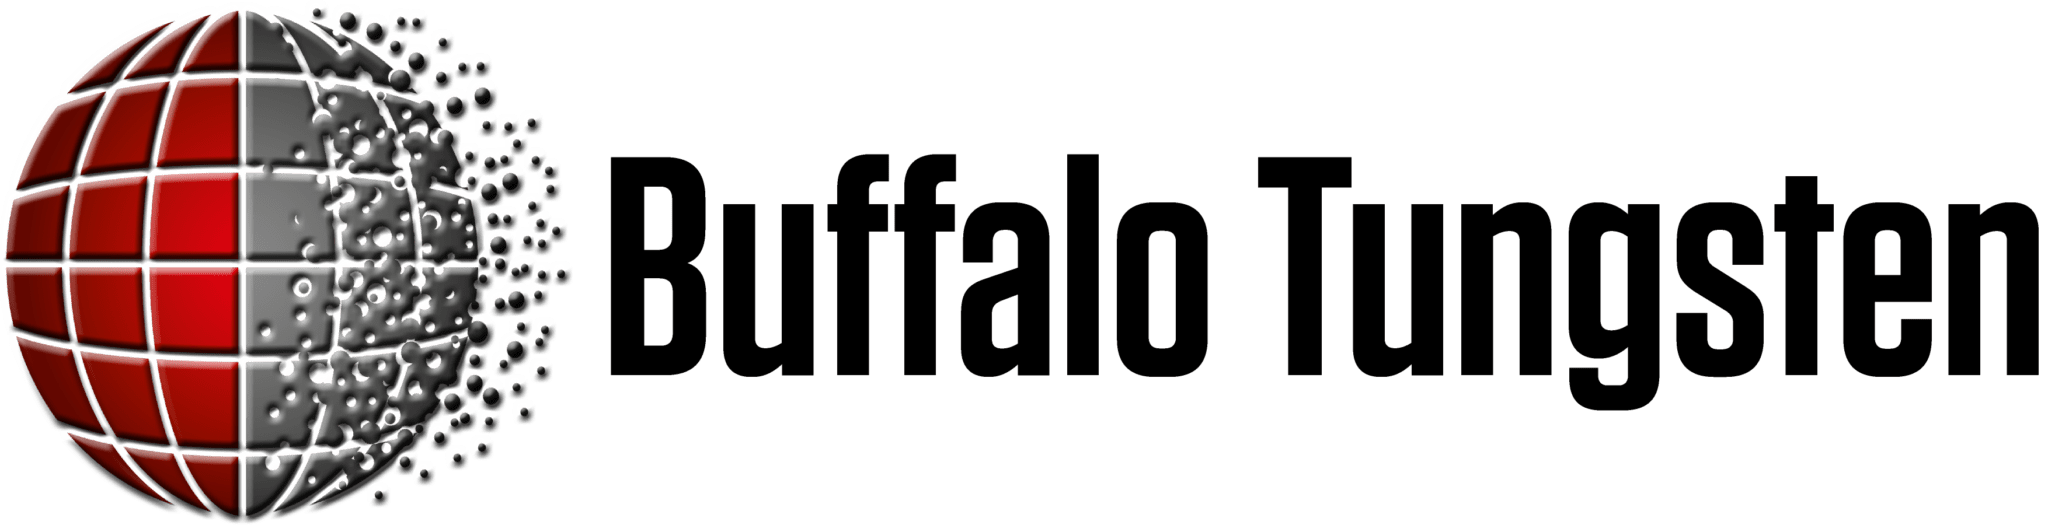 https://i1.wp.com/drivendigital.us/wp-content/uploads/2020/04/Buffalo-Tungsten-Logo-Horizontal-2048x525-1.png?ssl=1